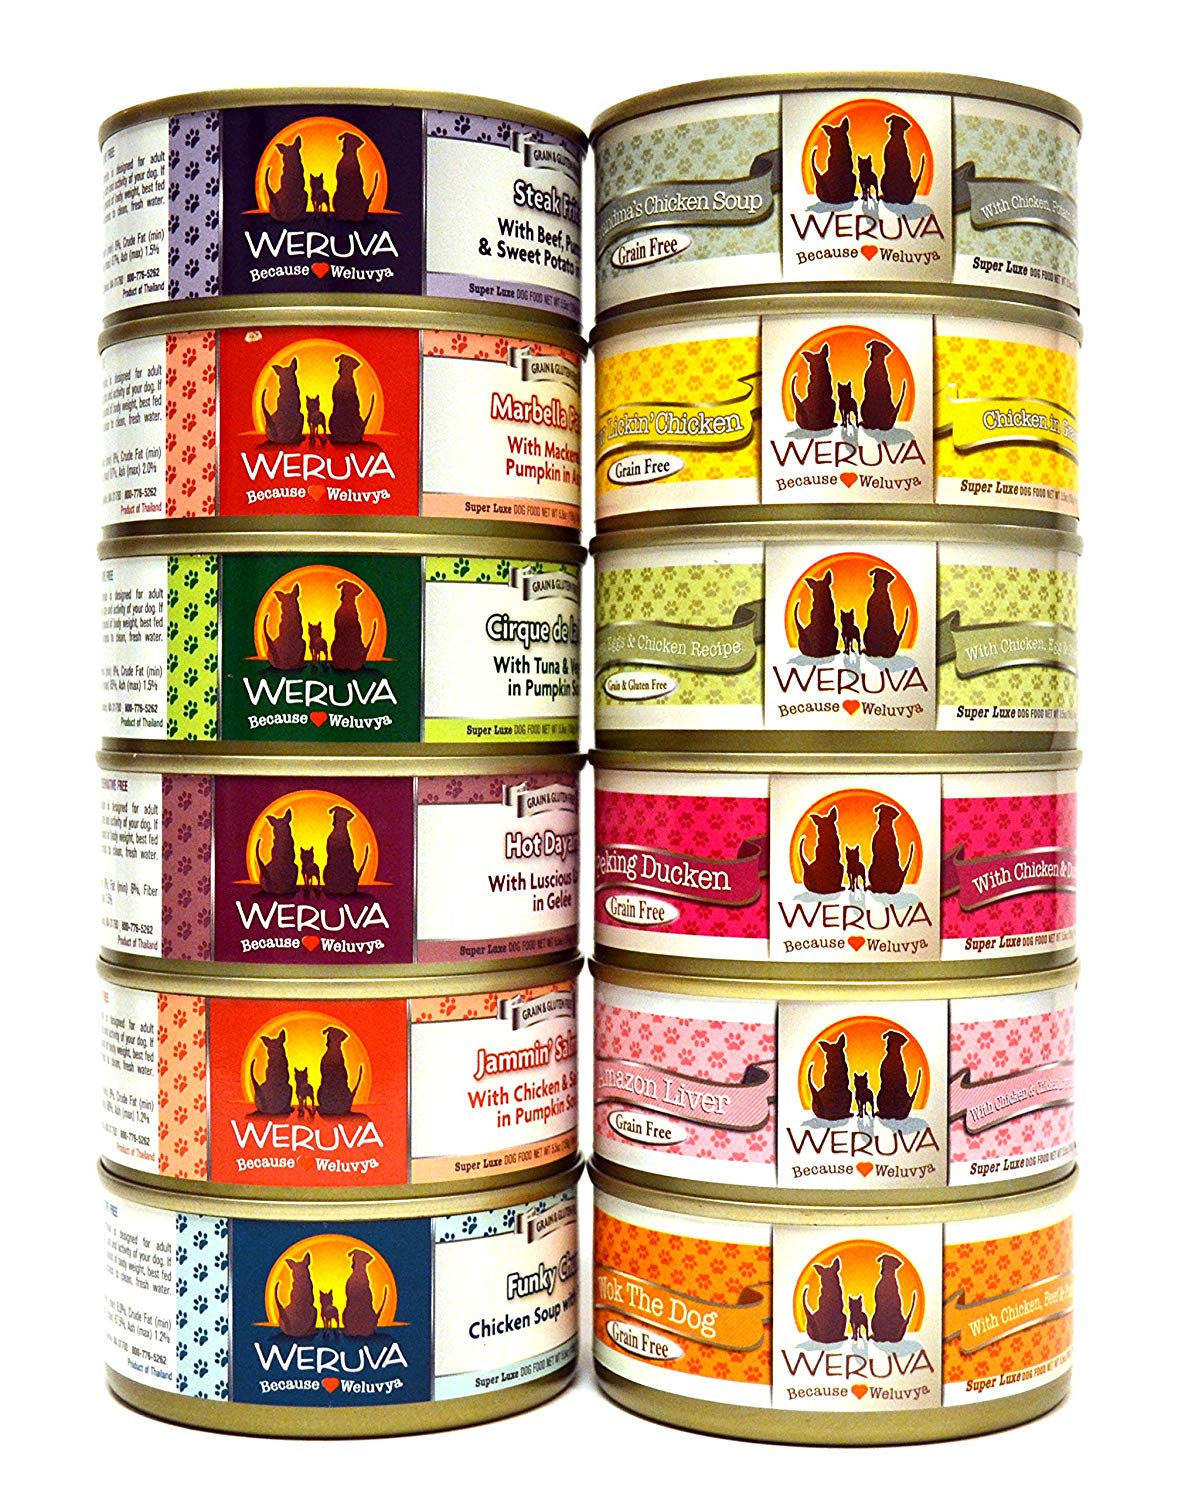 Weruva Grain Free Canned Dog Food Variety Pack - 12 Flavors (Grandma's Chicken Soup, Wok the Dog, Peking Ducken, Amazon Liver, Steak Frites, Funky Chunky, Cirque de la Mar, Paw Lickin' Chicken, Jammin' Salmon, Marbella Paella, Green Eggs & Chicken, and Hot Dayam!) - 5.5 Ounces Each (12 Total Cans)